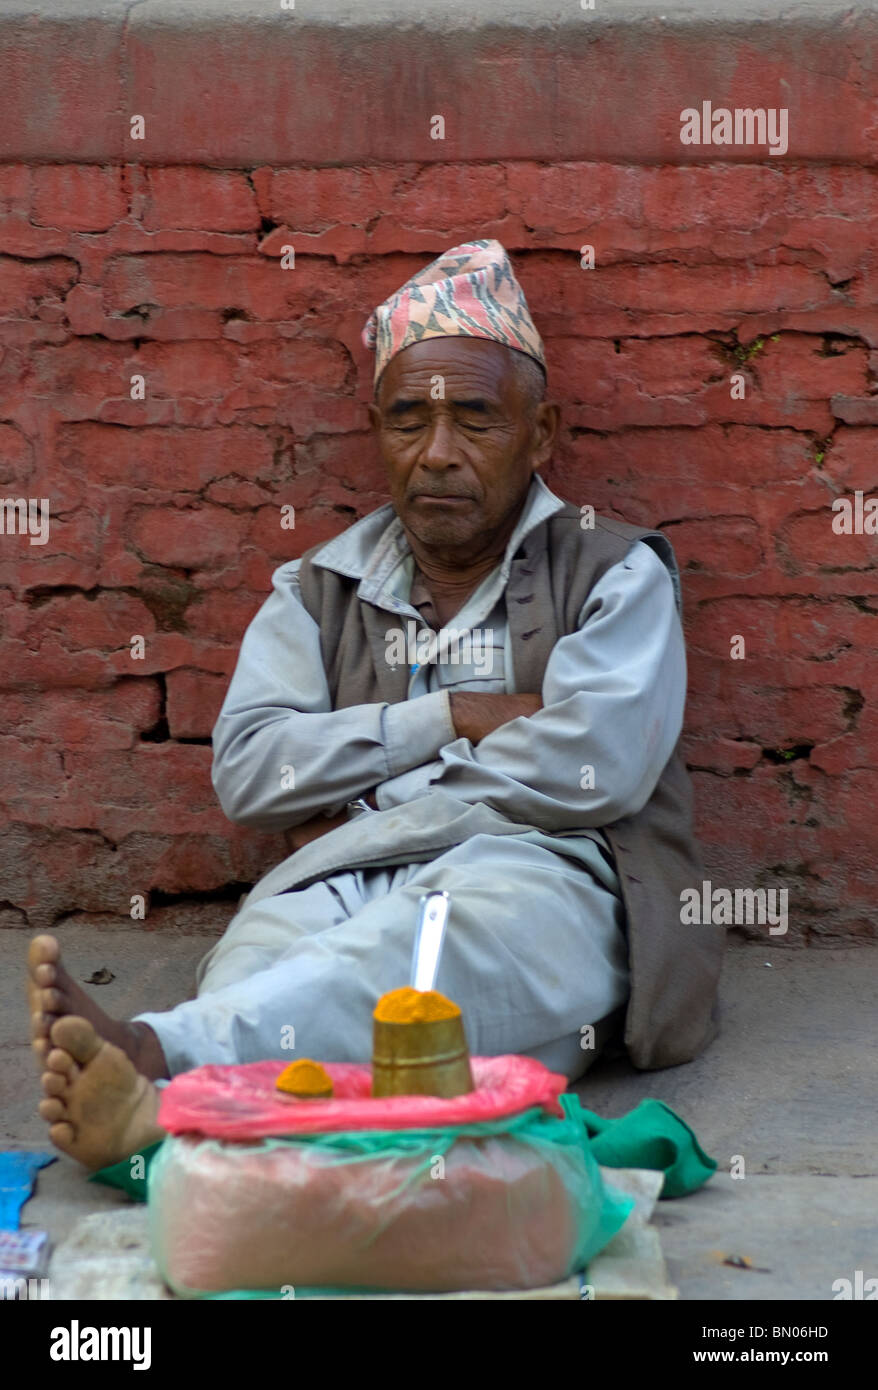 An old man dozes while waiting for people to buy his tumeric powder in Durbar Square, Kathmandu, Nepal. - Stock Image